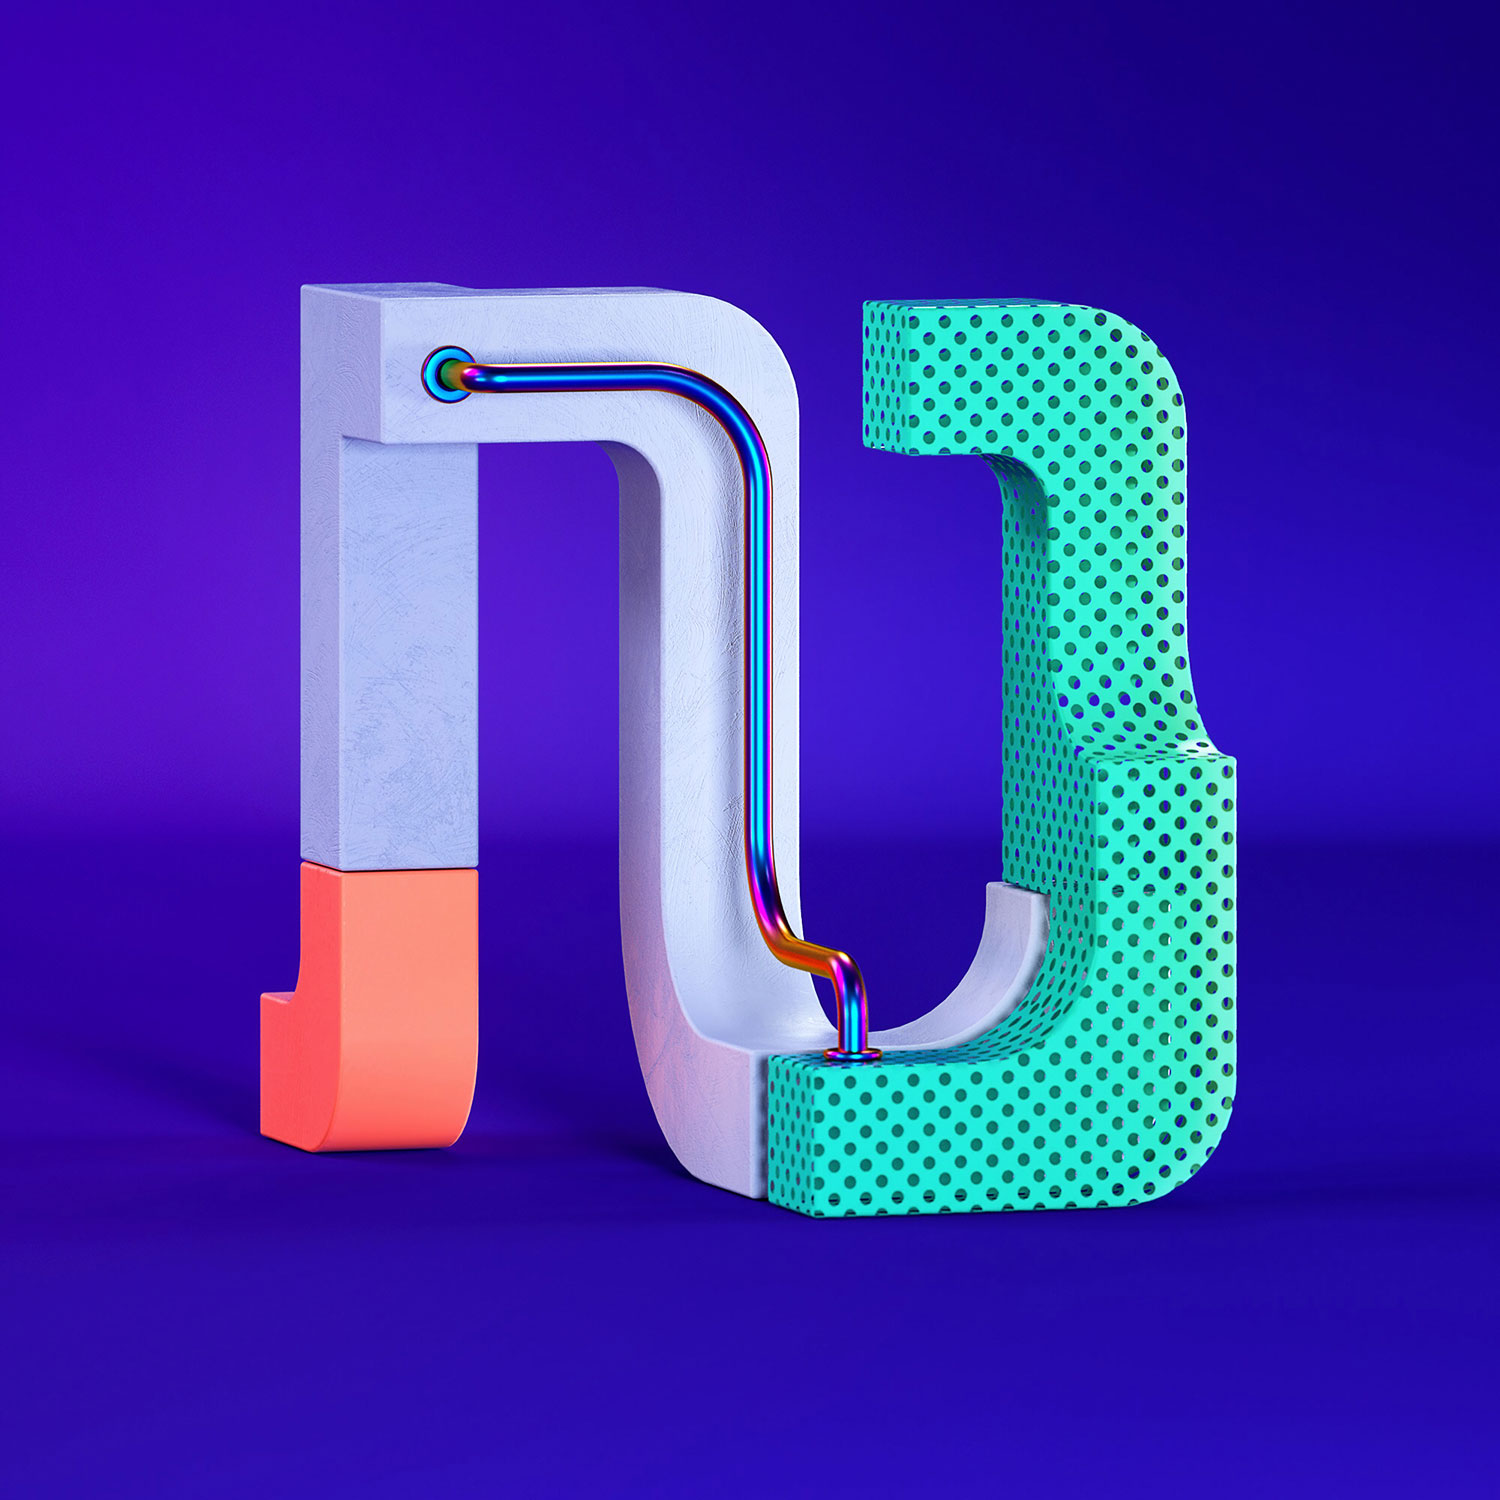 36 Days of Type 2018 - 3D letter N visual.